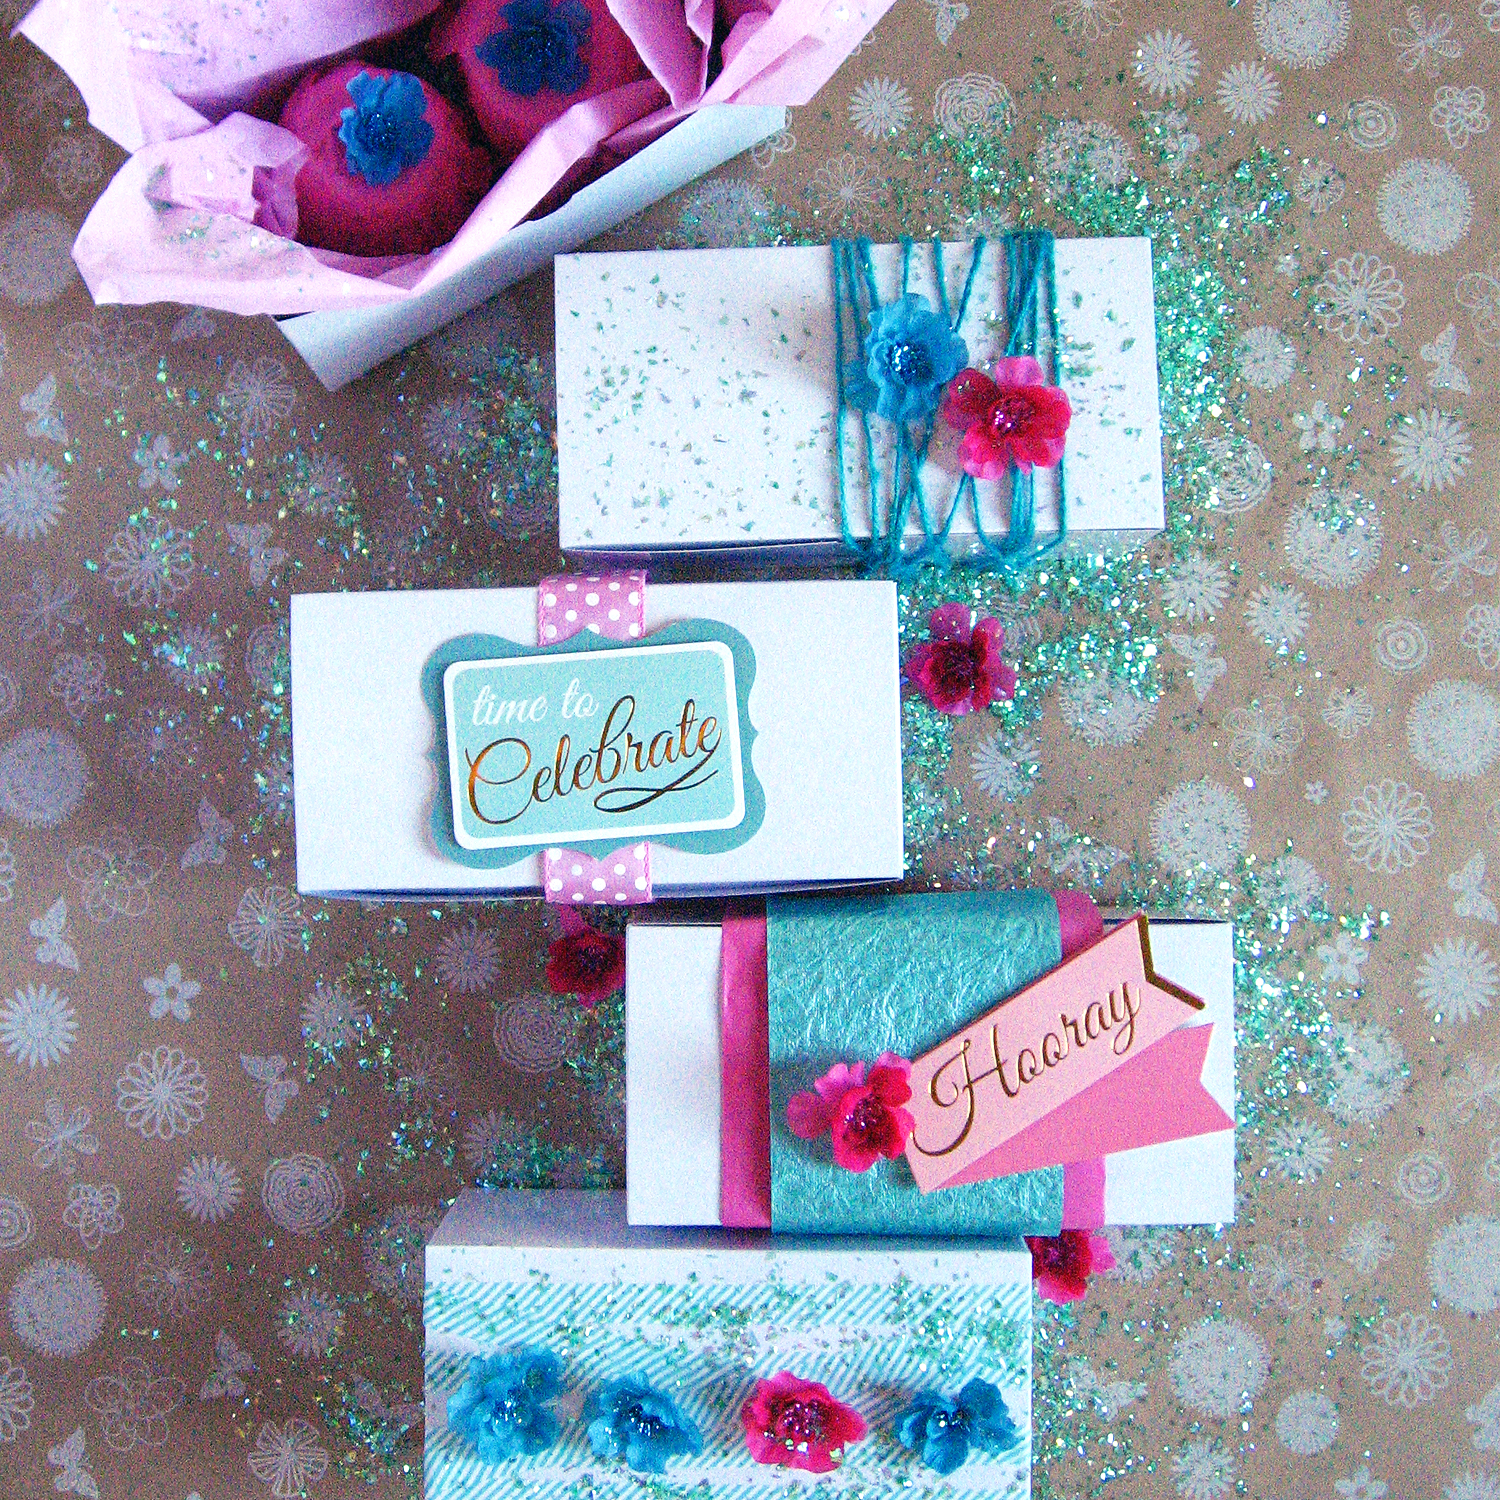 set-of-10-high-gloss-boxes-gift-wrap-ideas